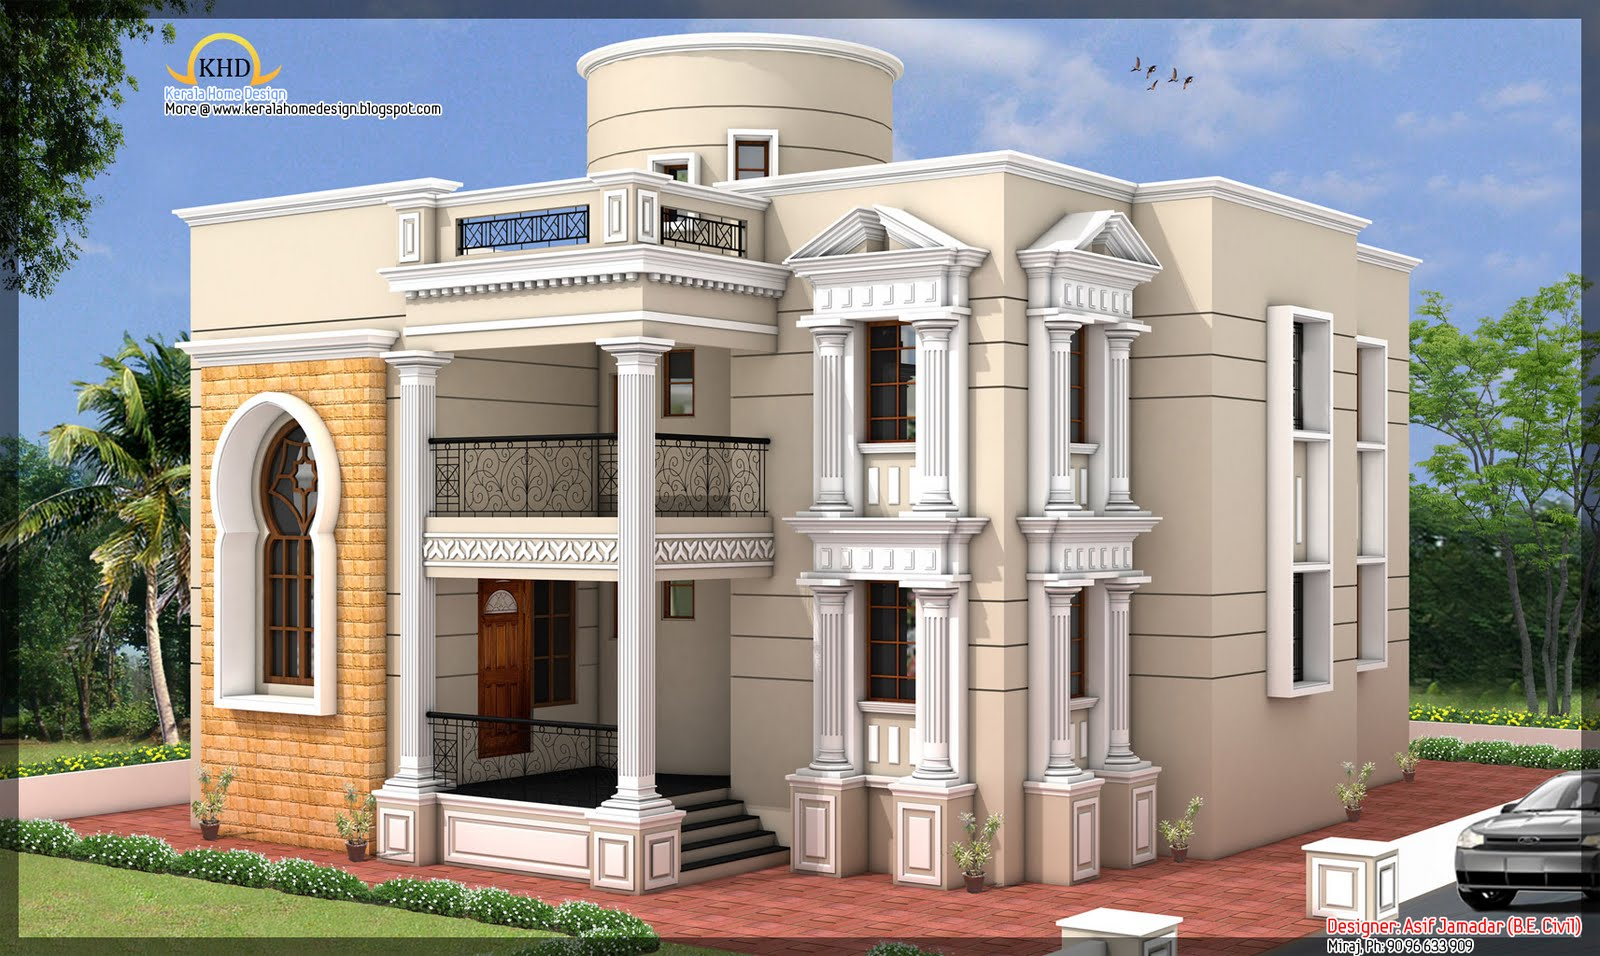 ground floor 2121 00 sq ft first floor 1760 00 sq ft designer asif ...